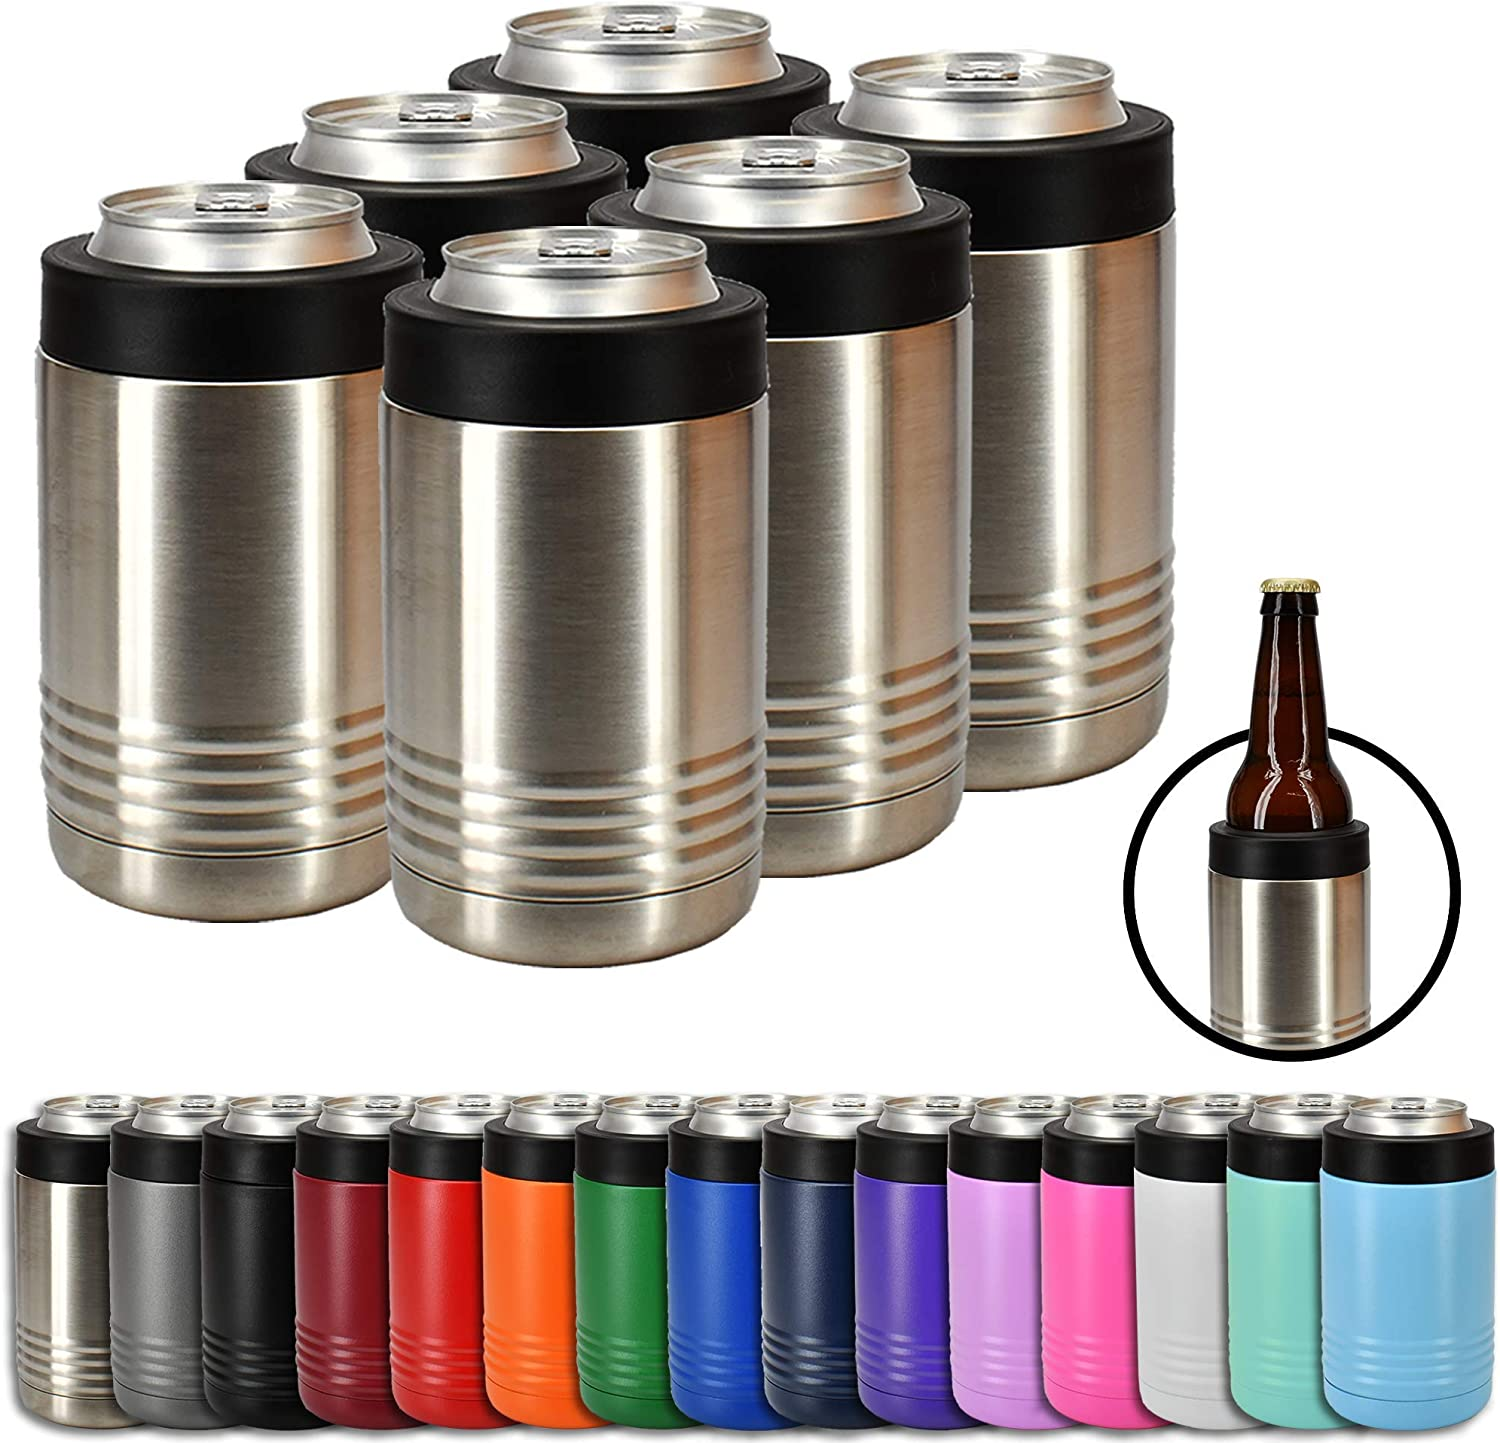 Clear Water Home Goods - 12 oz Stainless Steel Double Wall Vacuum Insulated Can or Bottle Cooler Keeps Beverage Cold for Hours - Stainless Steel - 6 Pack